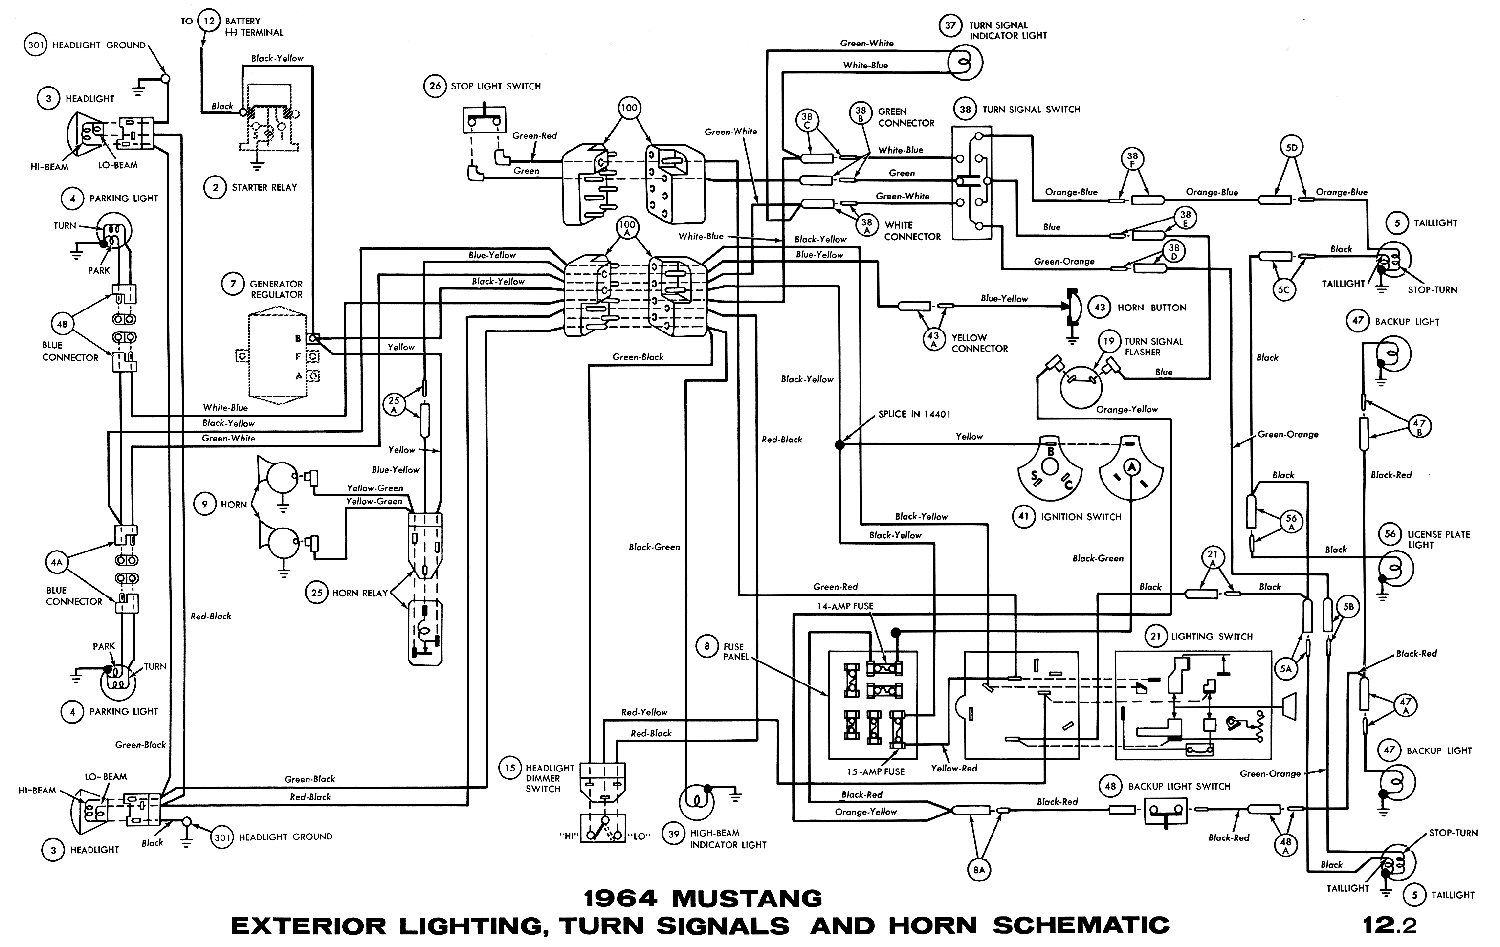 hight resolution of 1964 mustang exterior lightning turn signals and horn schematic